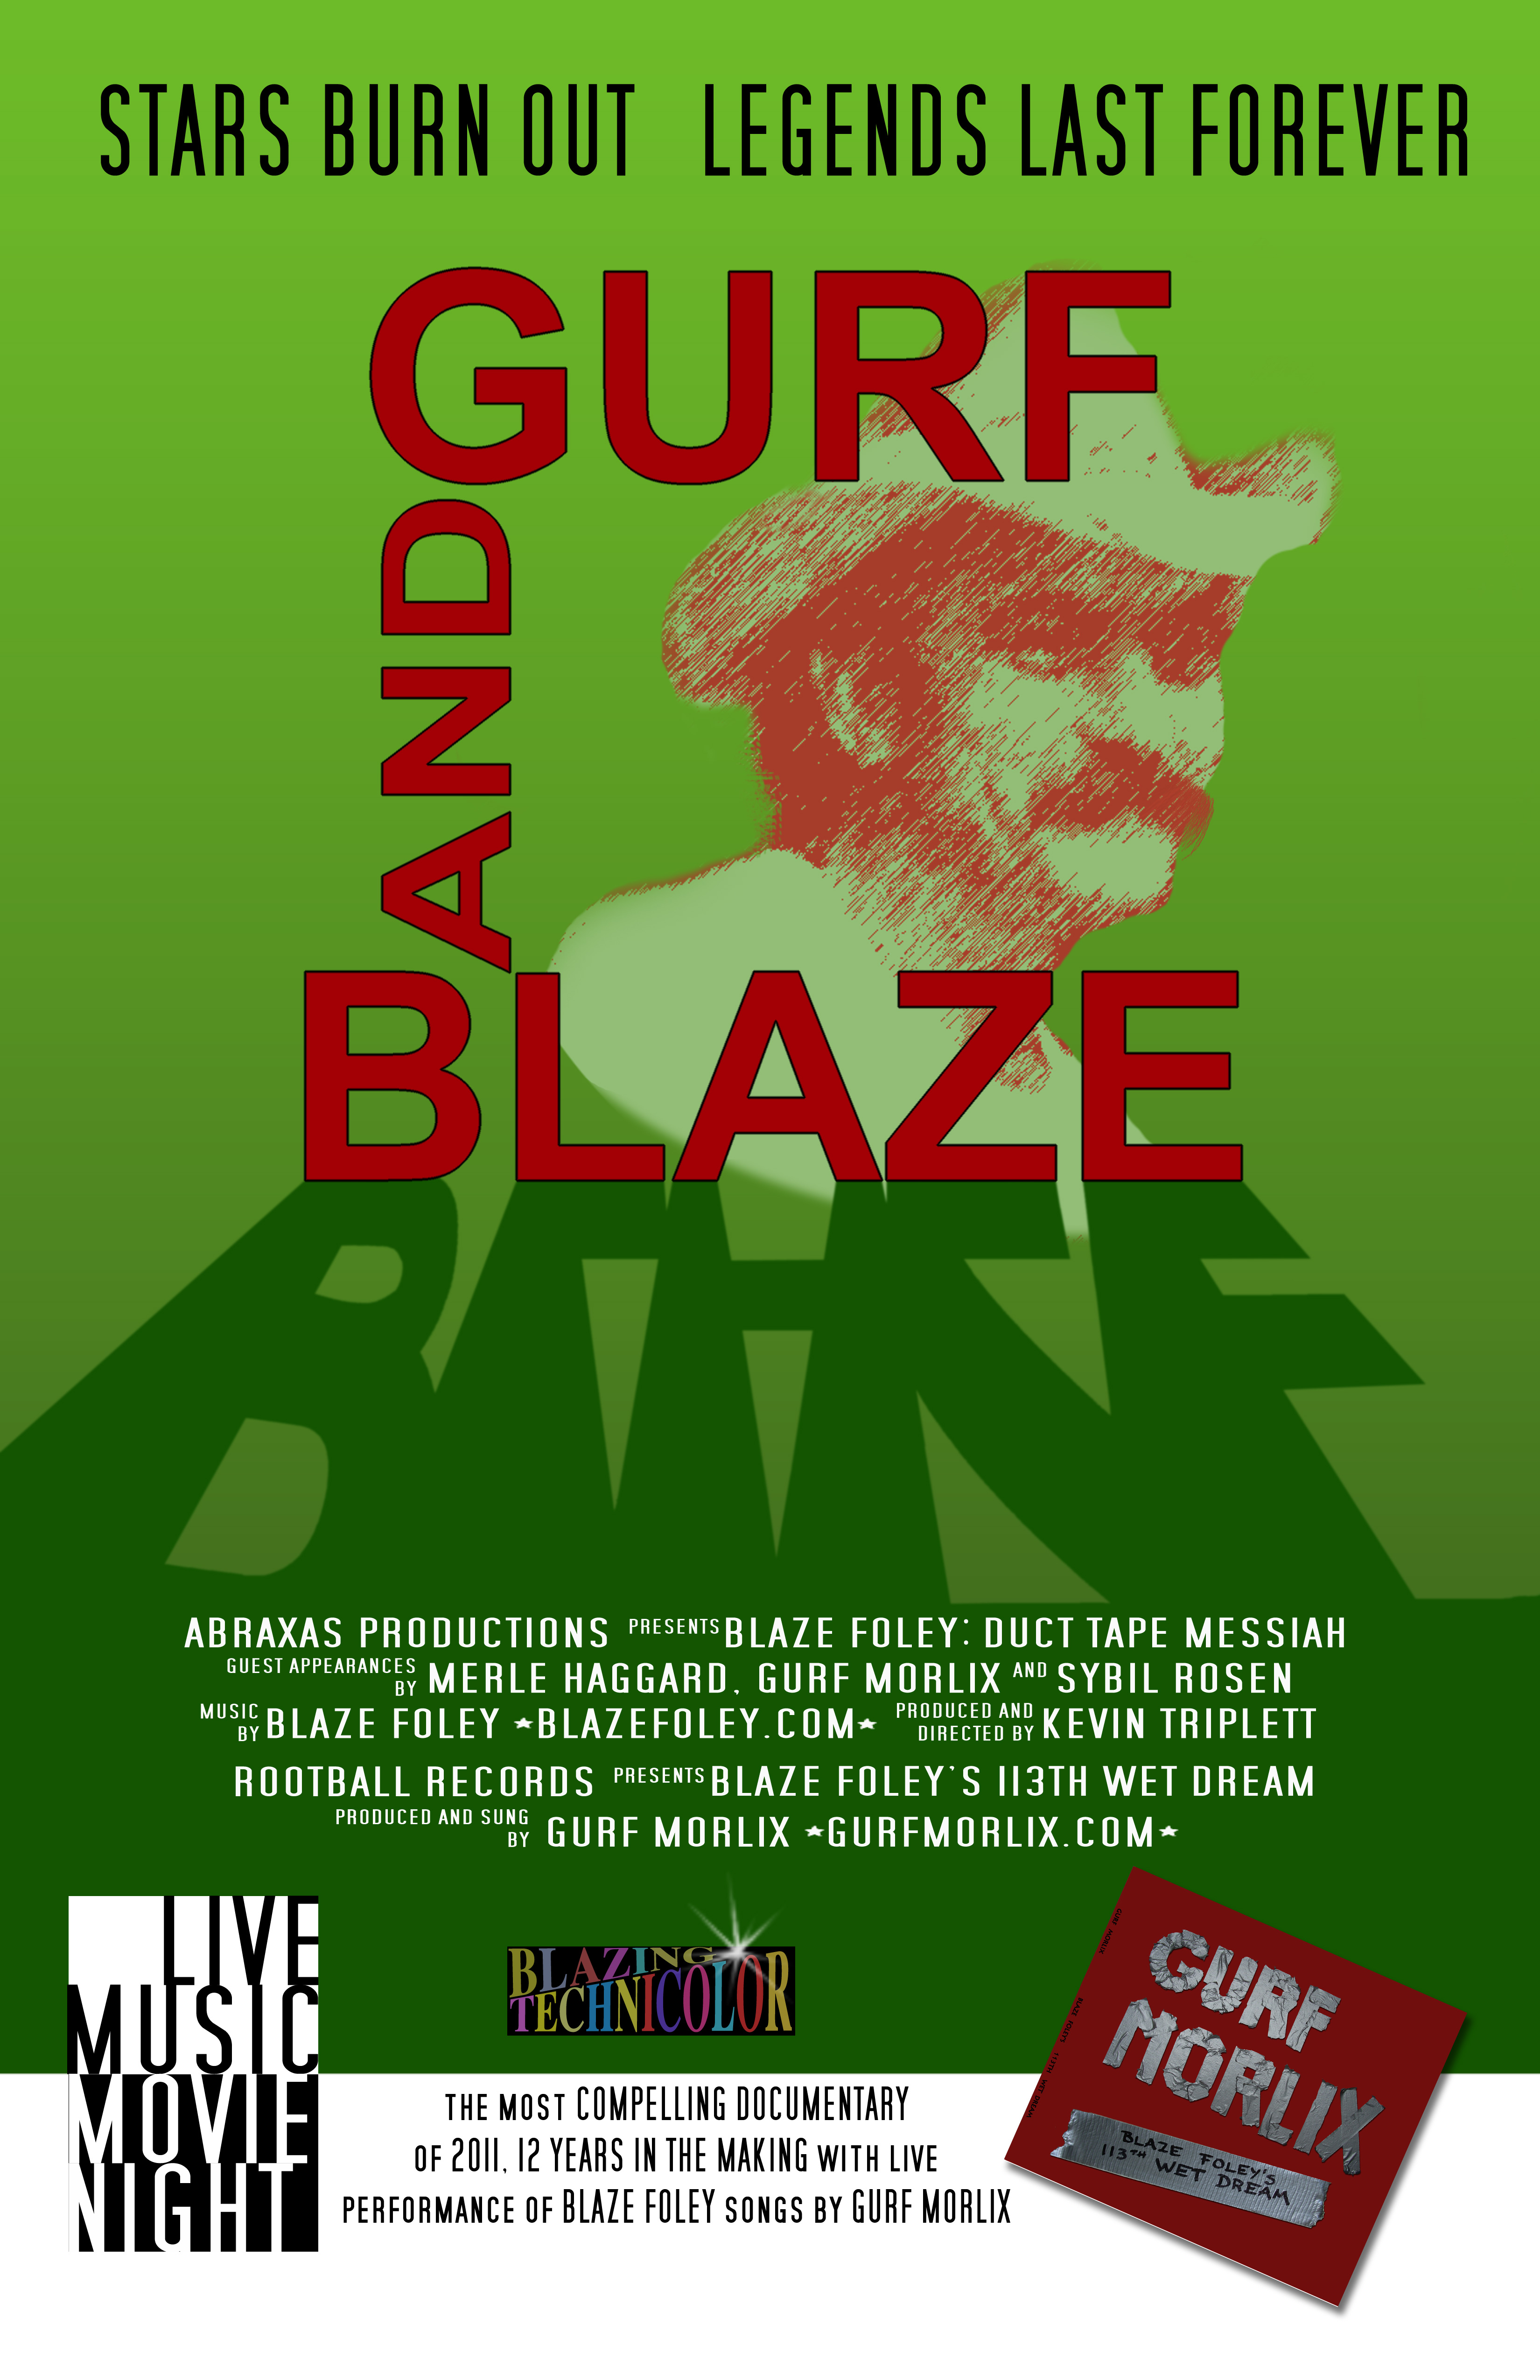 Green poster for the Gurf and Blaze event